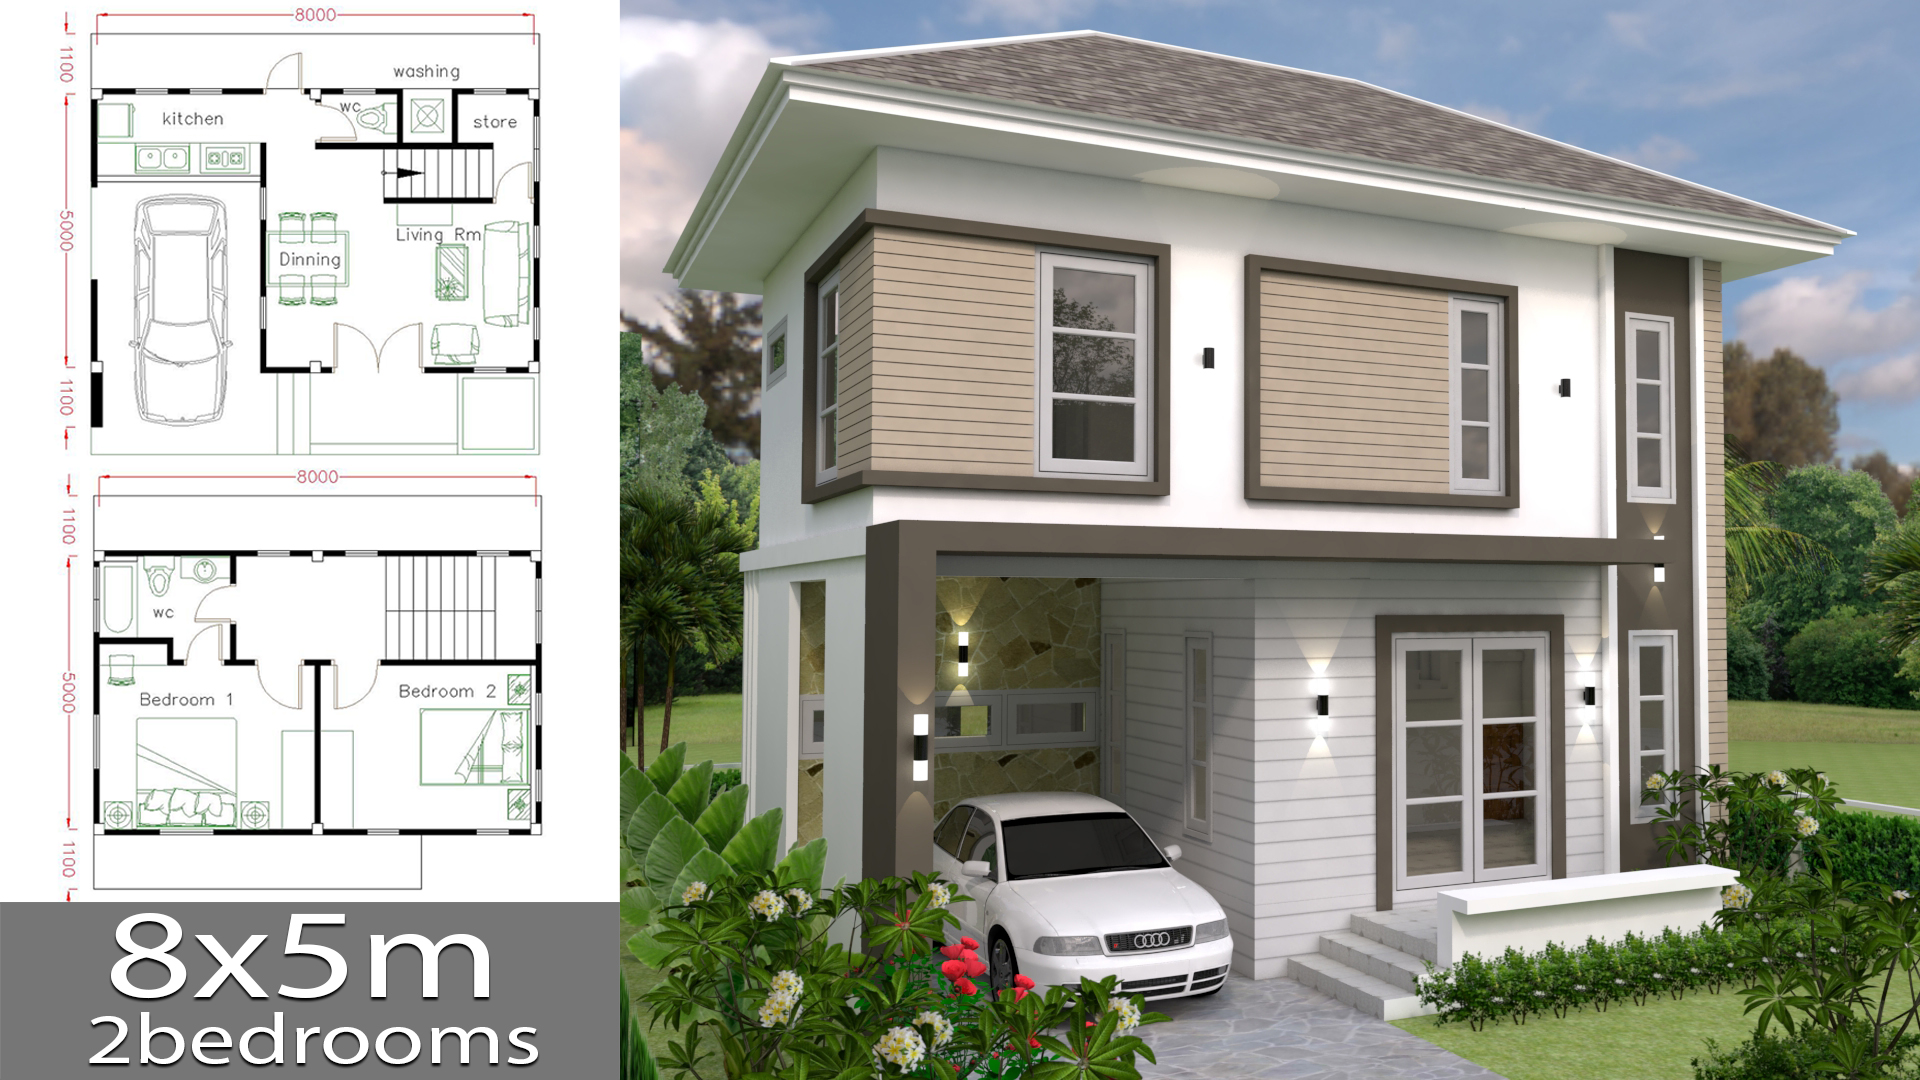 Small Home design Plan 8x5m with 2 bedrooms - SamHousePlans